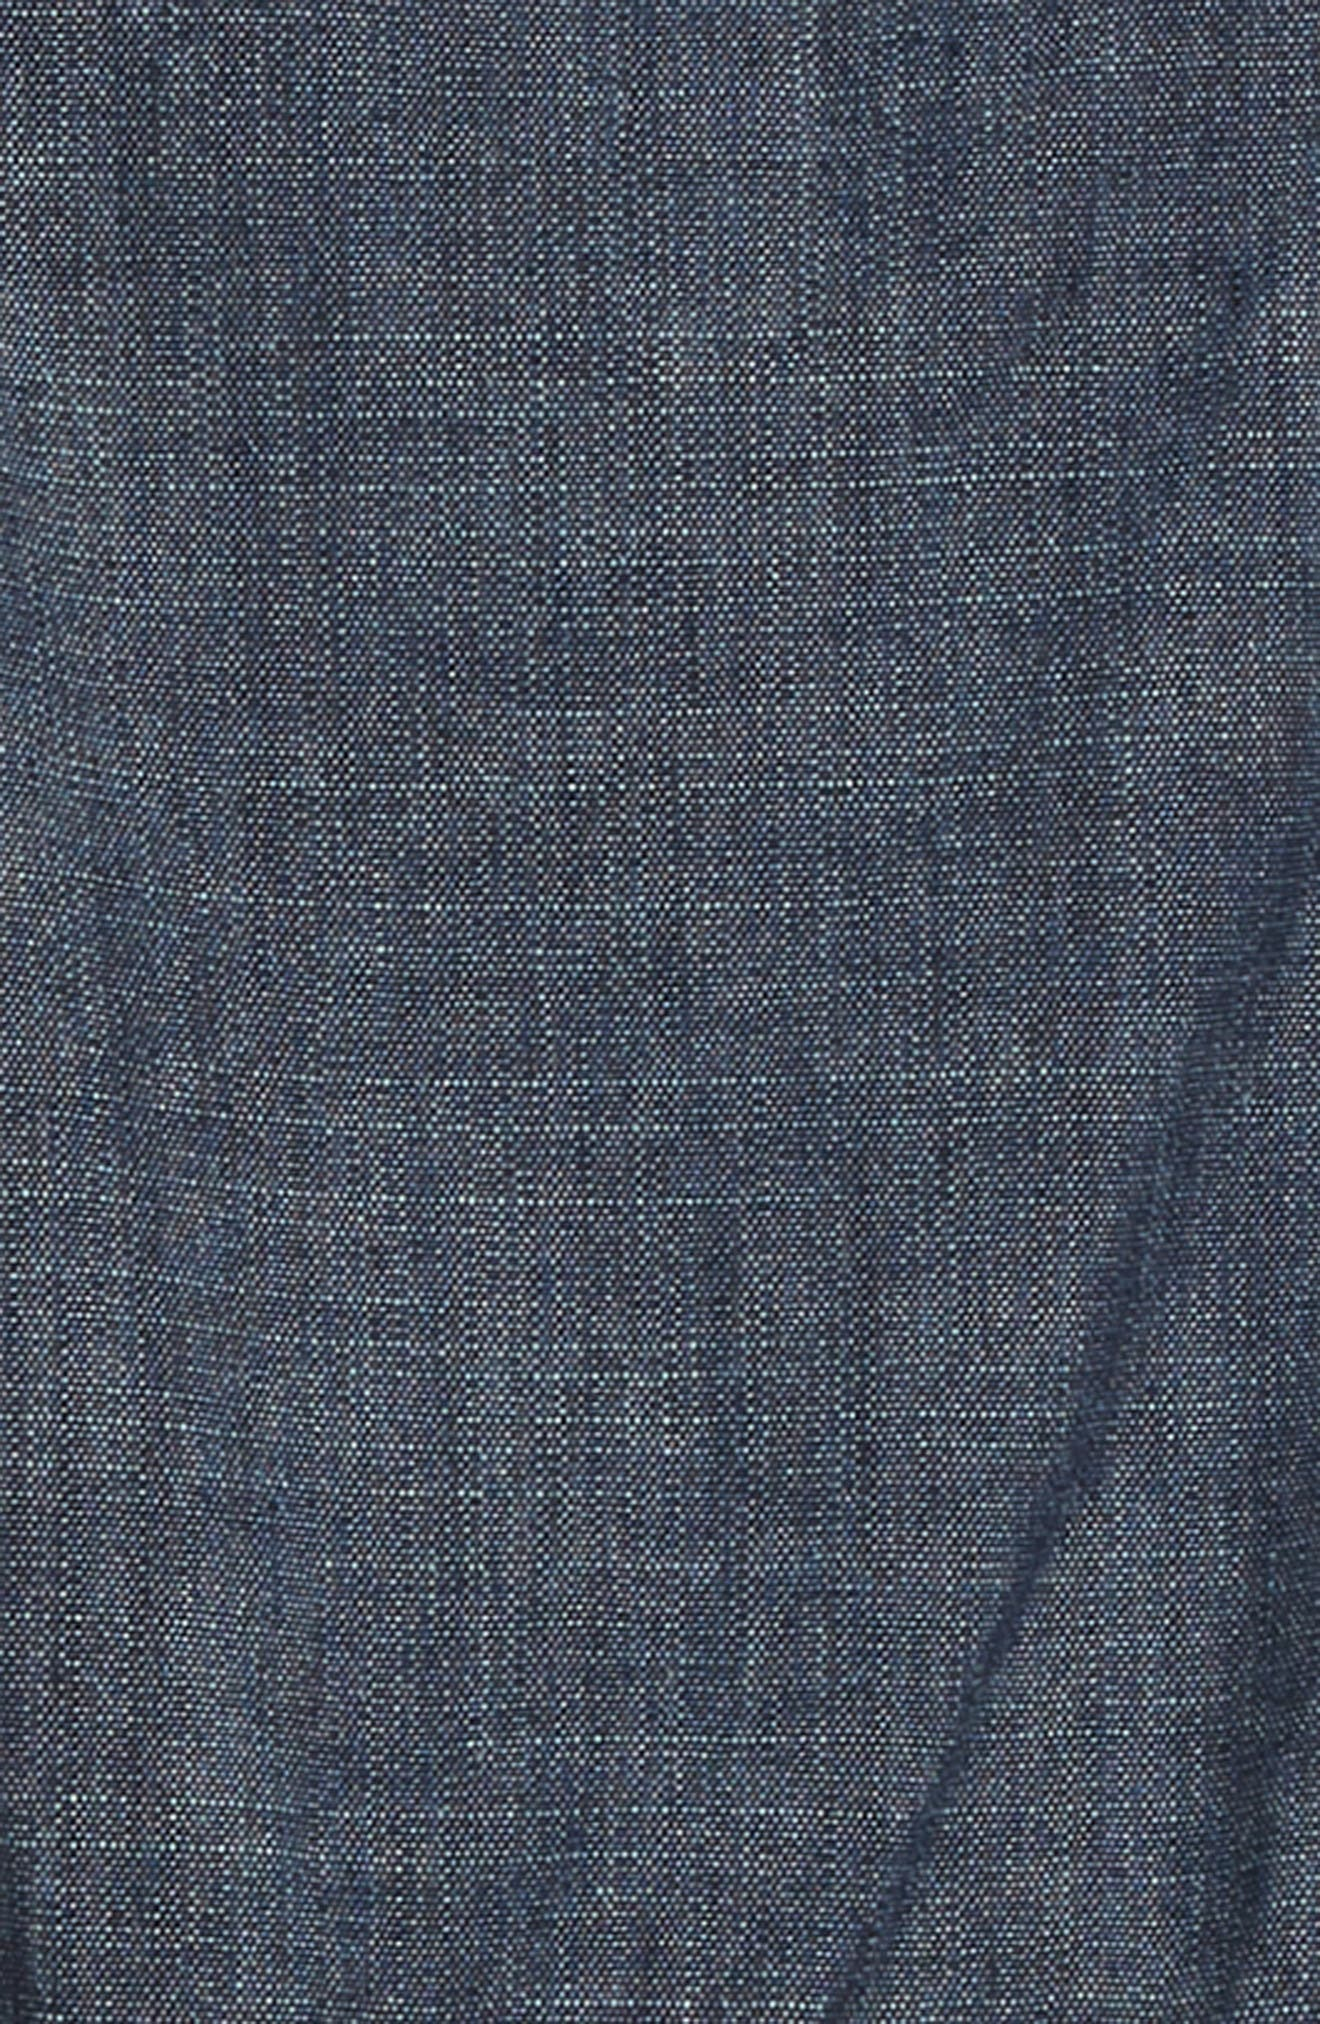 Chambray Jumper,                             Alternate thumbnail 3, color,                             BLUE CHAMBRAY